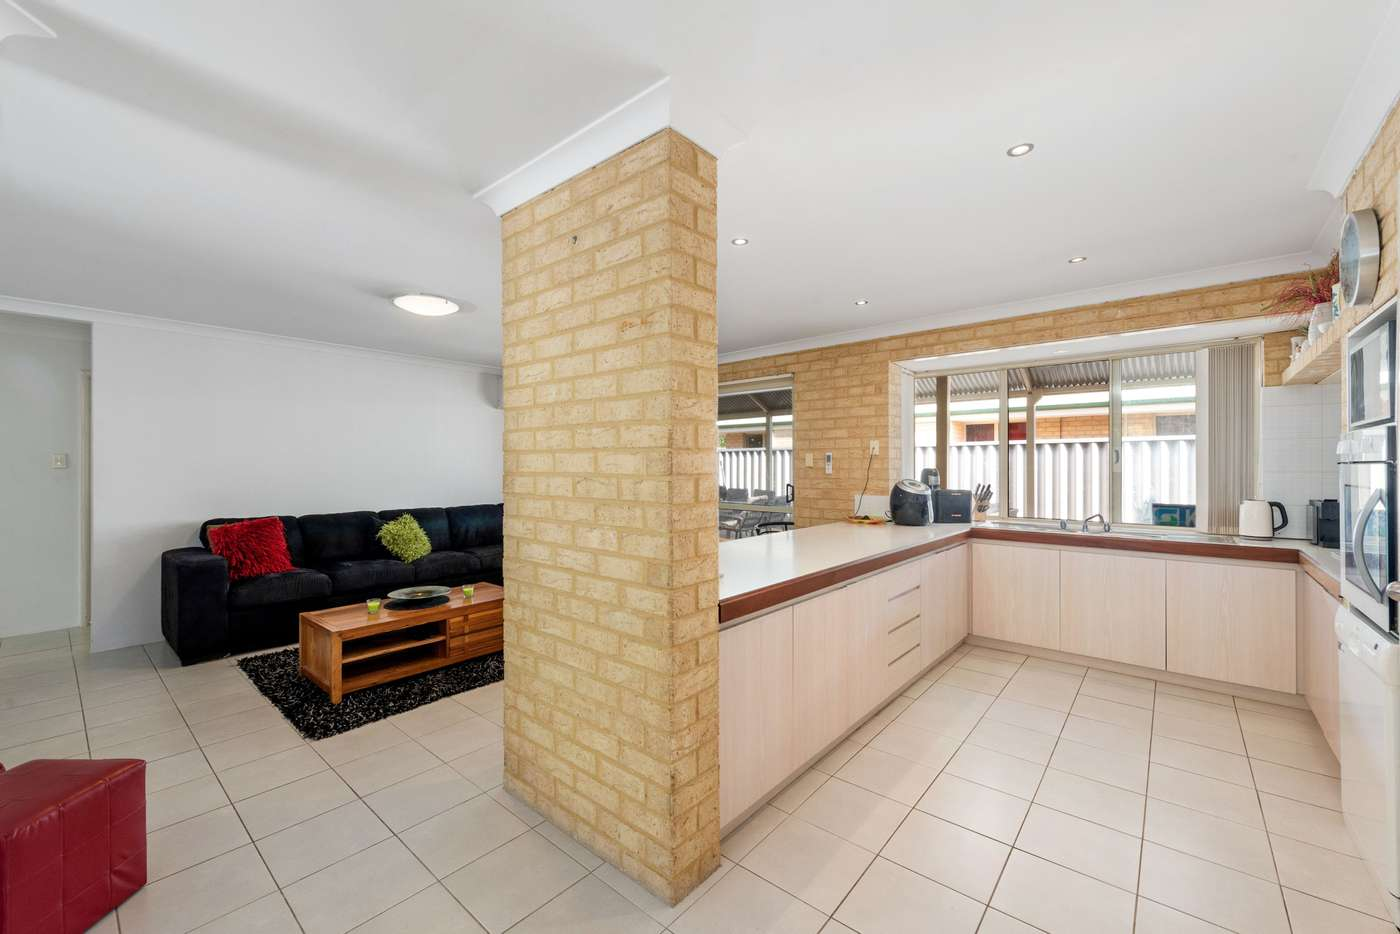 Sixth view of Homely house listing, 39 Delamere Avenue, Currambine WA 6028